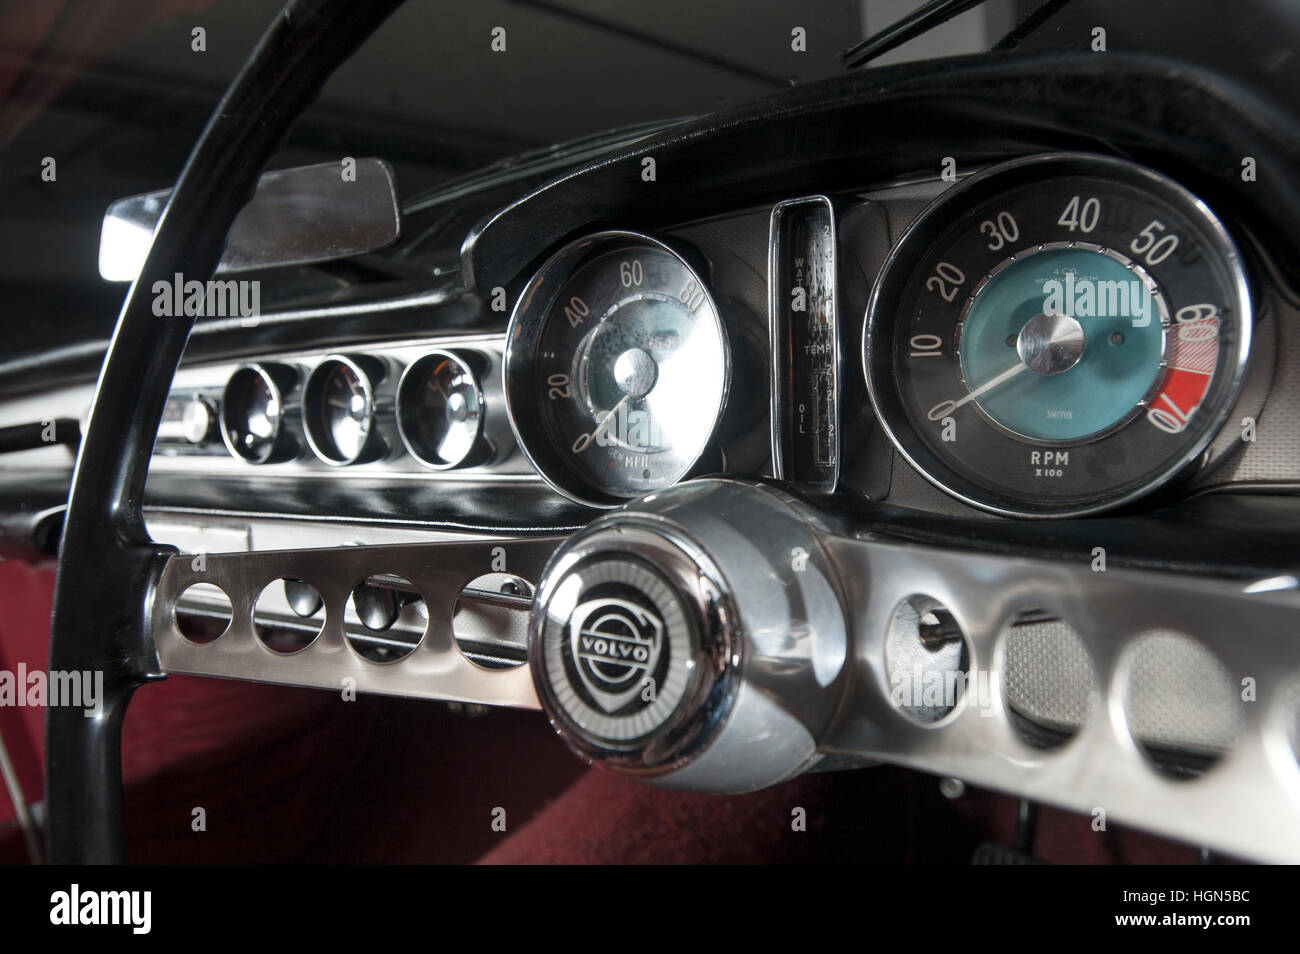 Cool S Dashboard Of A Volvo P Classic Swedish Sports Car - Cool car dashboards